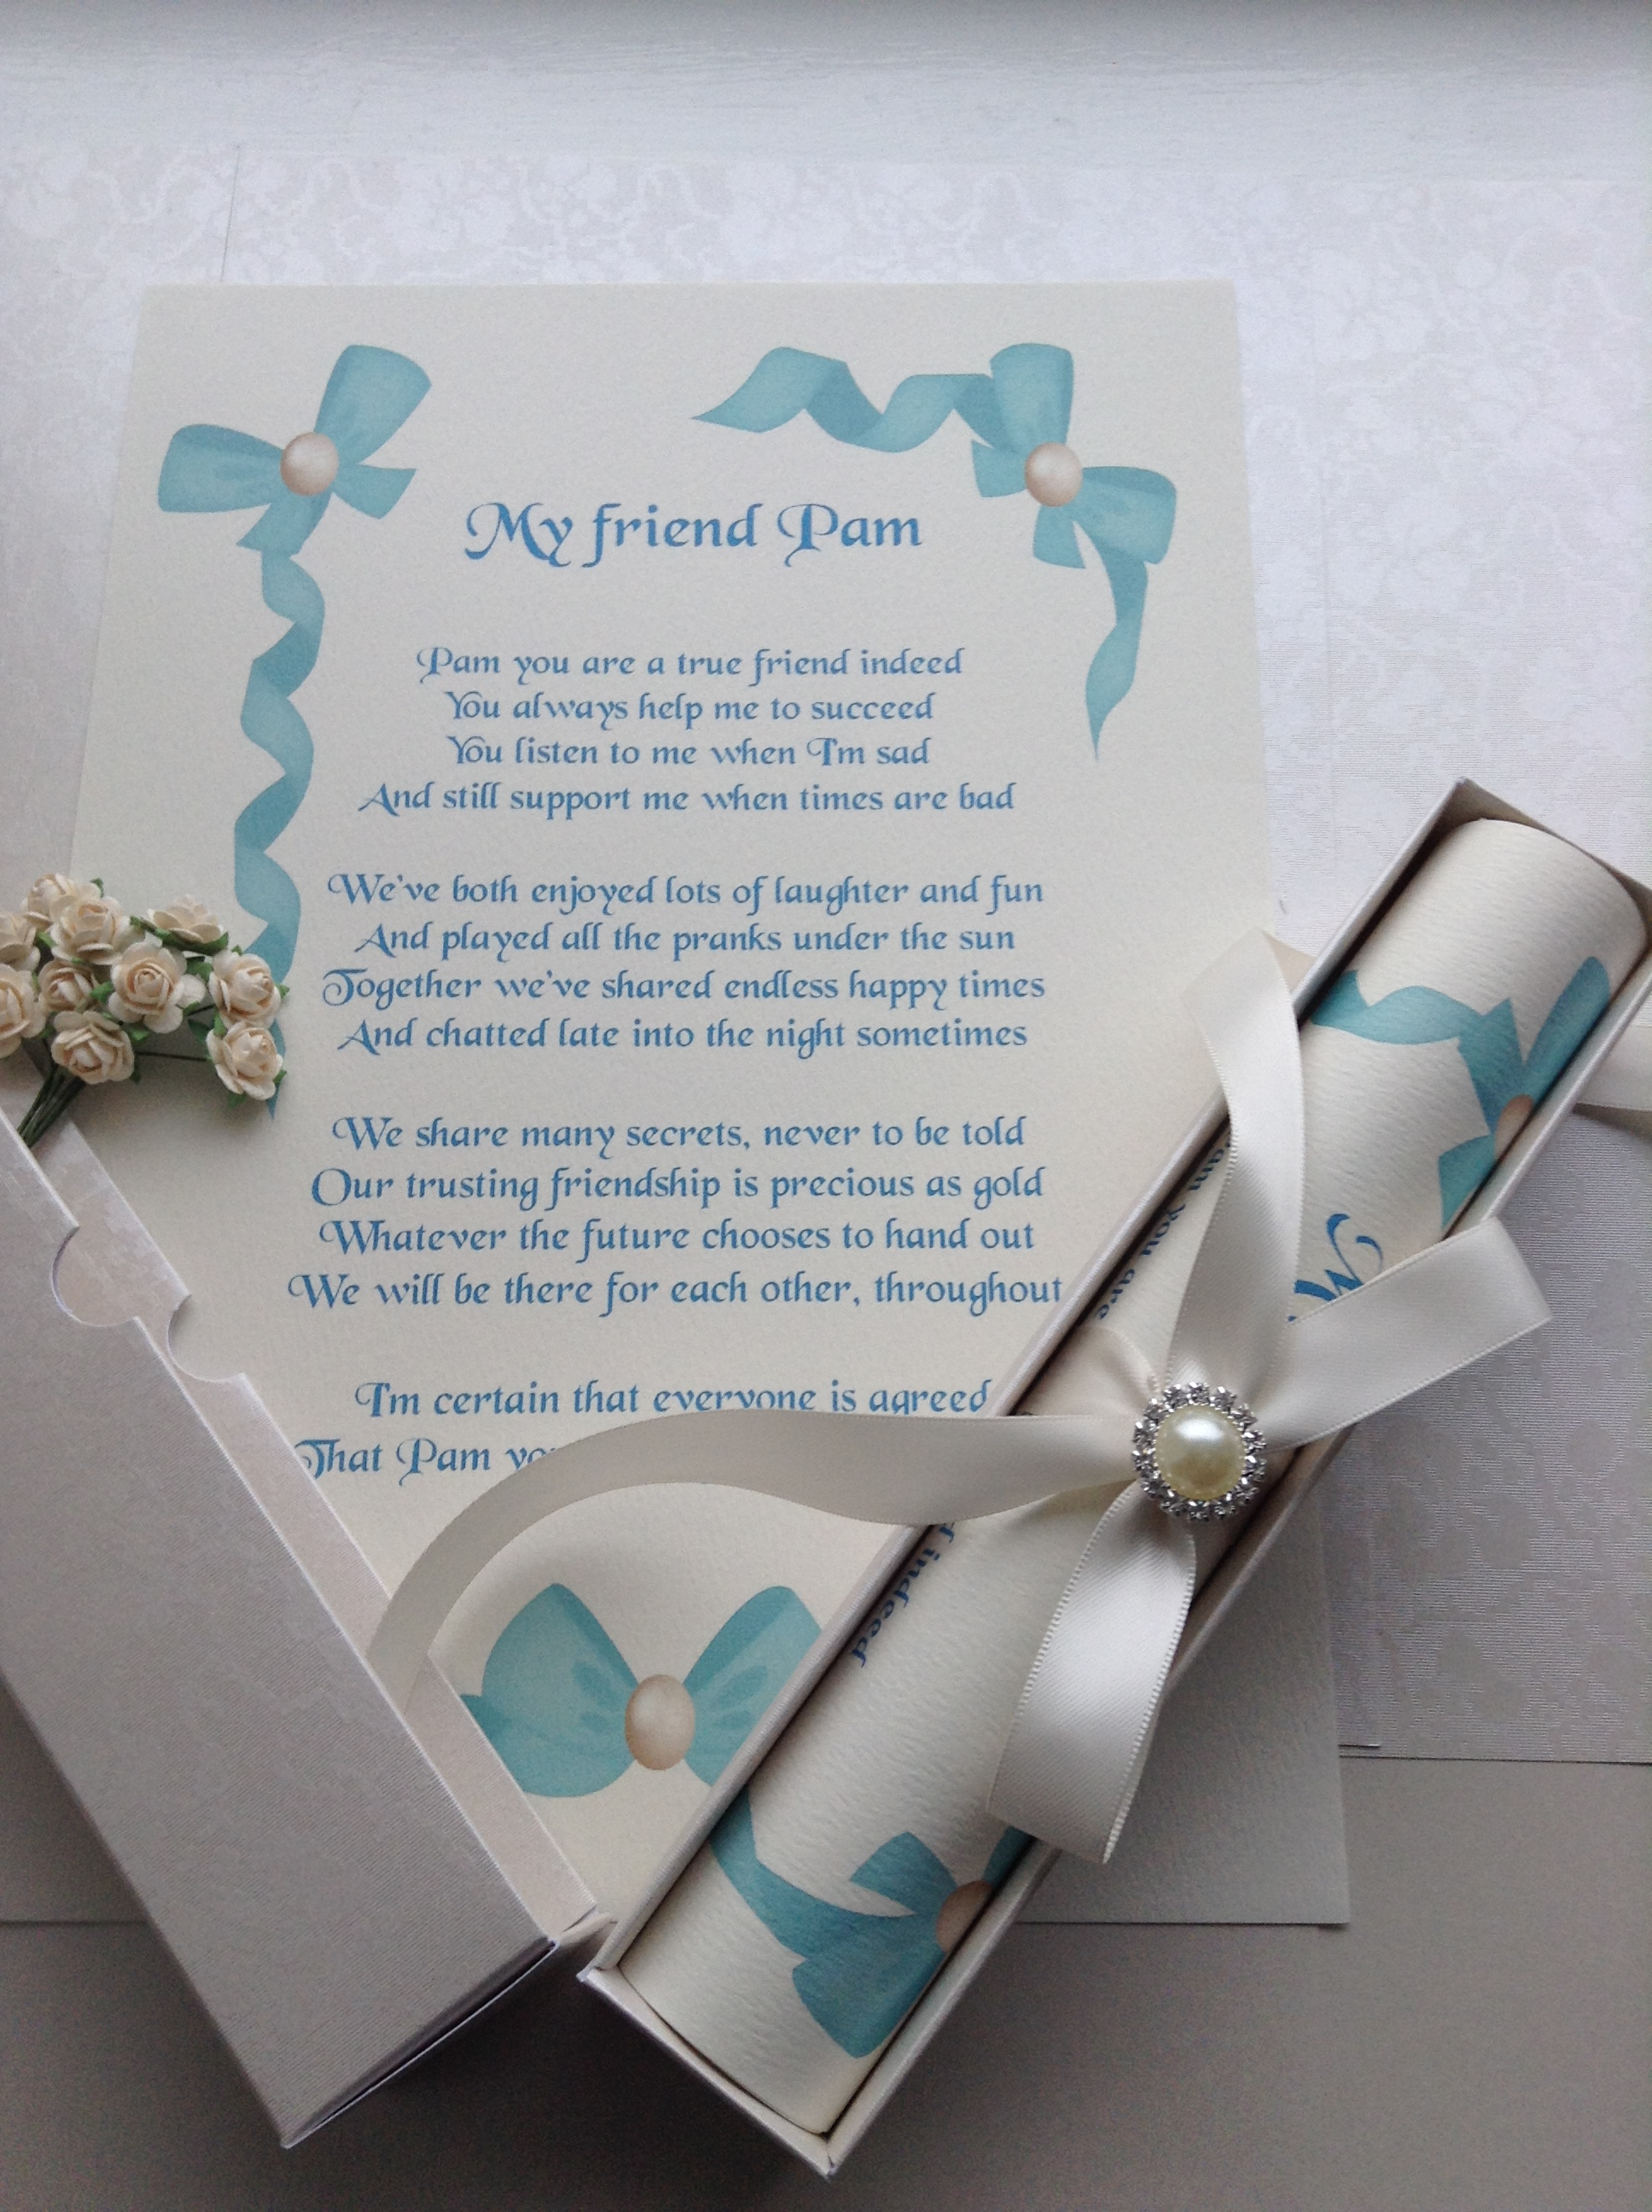 A4 scroll with pearl look embellishment.